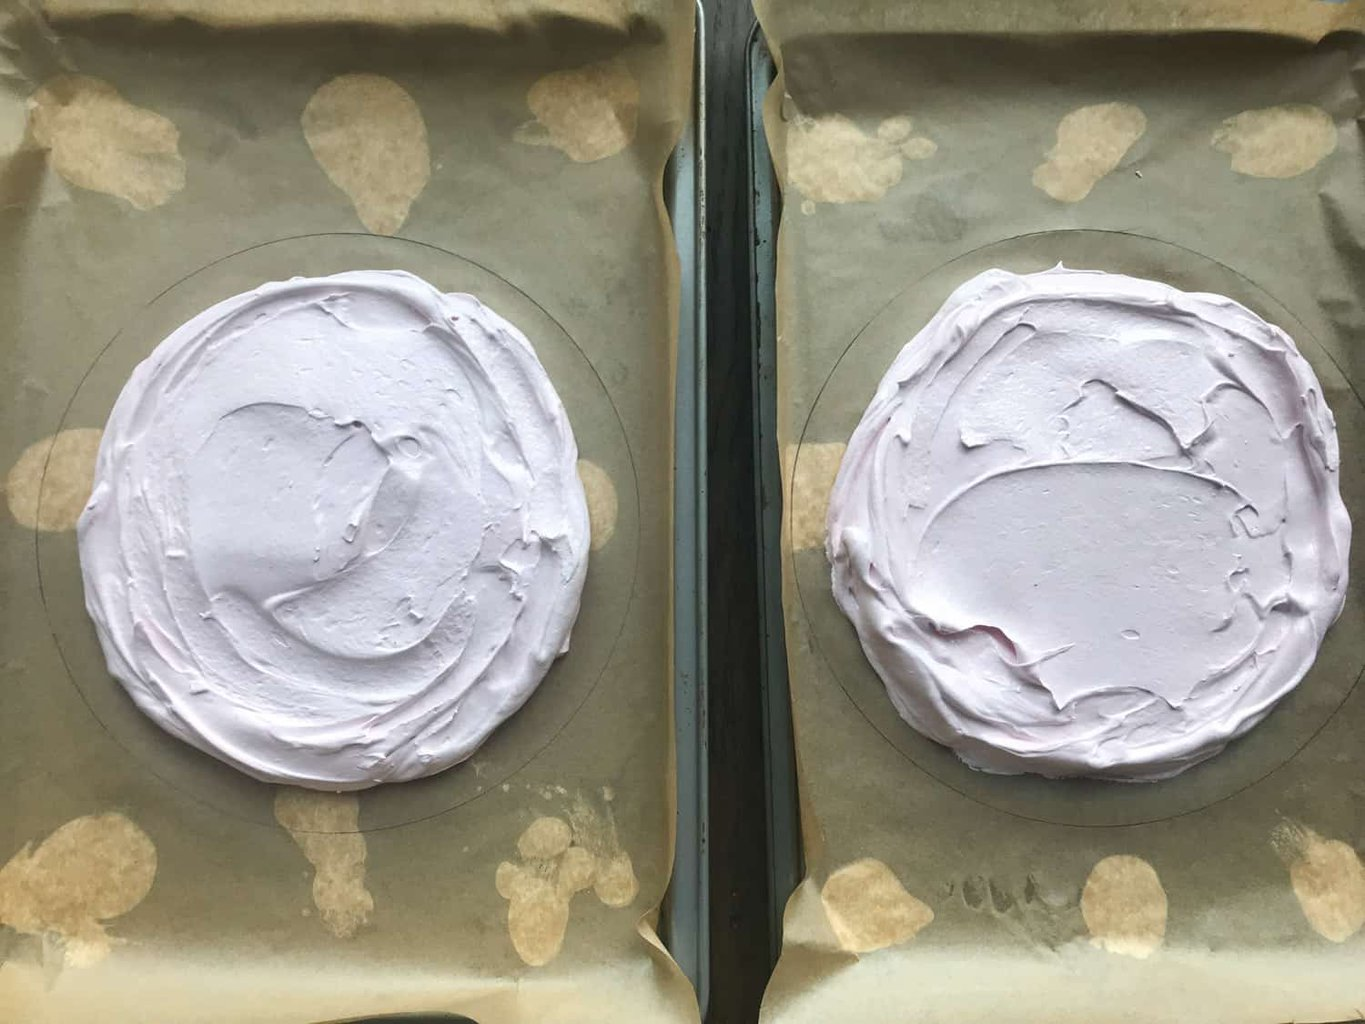 Spreading meringue into a disc shape